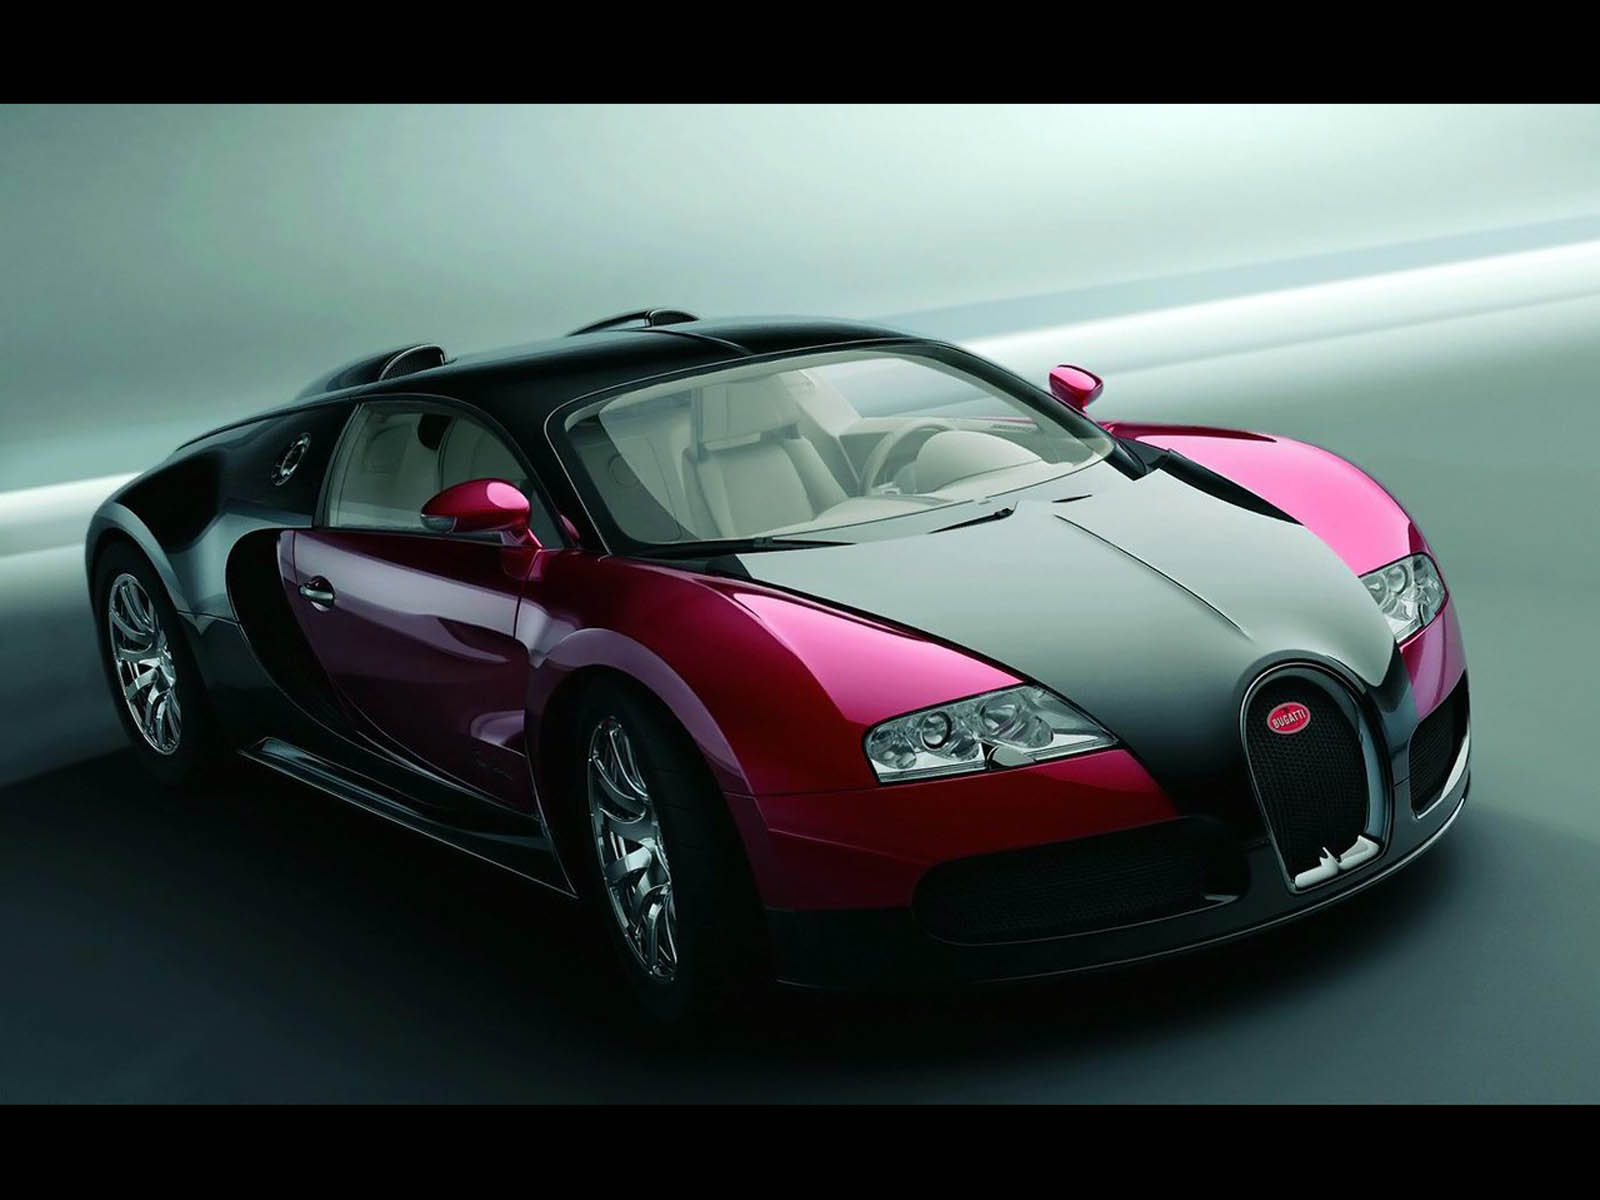 Tag: Bugatti Veyron Car Wallpapers, Backgrounds, Photos, Pictures, and ...